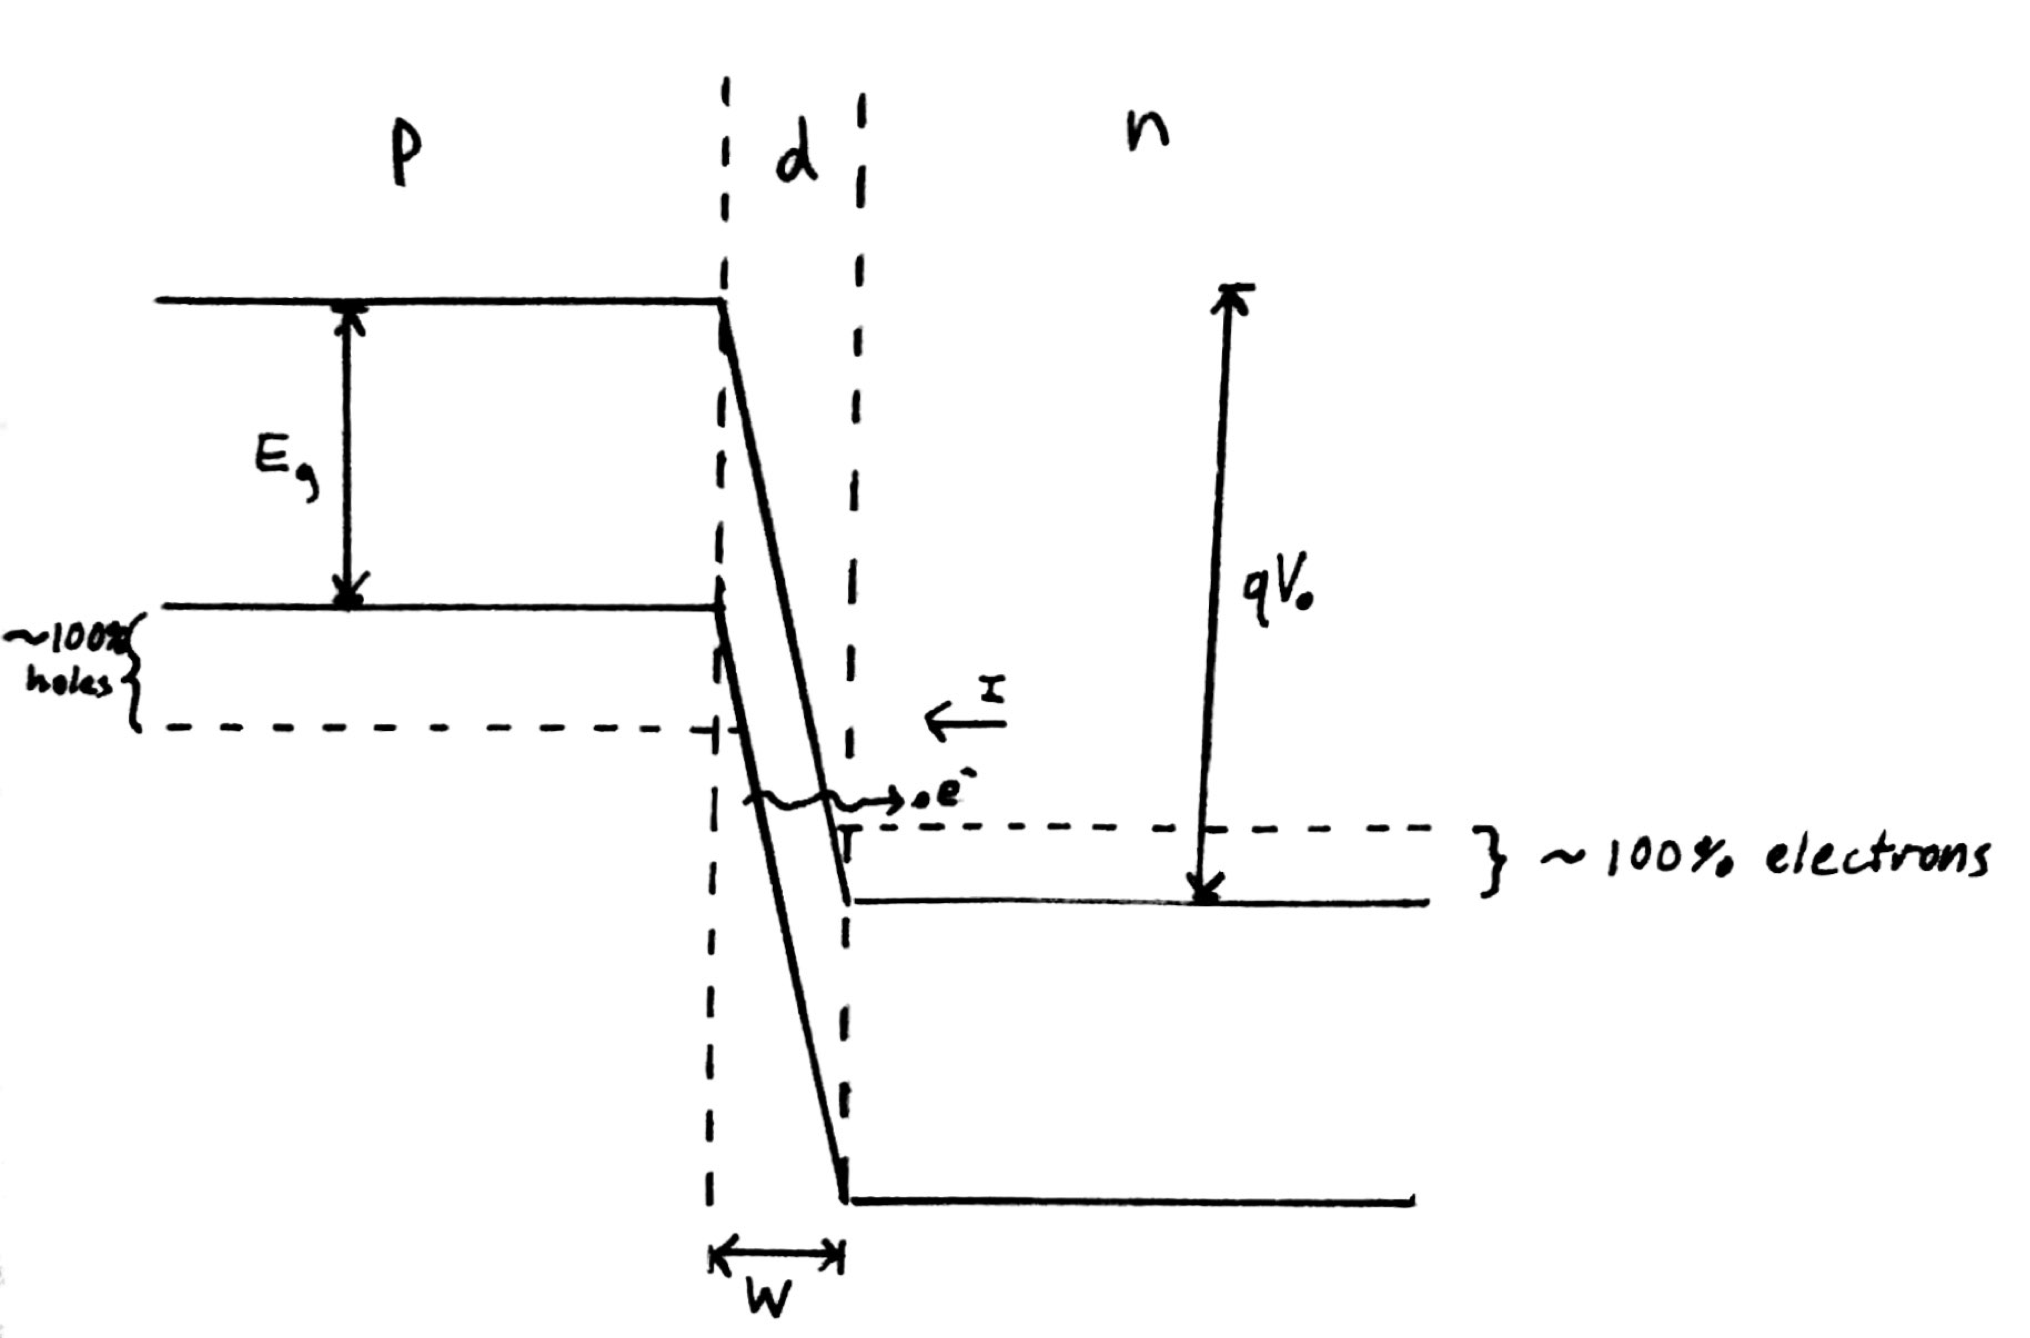 Modeling And Experimental Tools With Prof Magnes Ideal For Two Tunnel Diodes In Series Perform Arithmetic Function Of Full 1 Band Diagram Representing Esaki Diode Under Tunneling Condition The Is Reverse Biased Allowing An Electron On P Side To Across